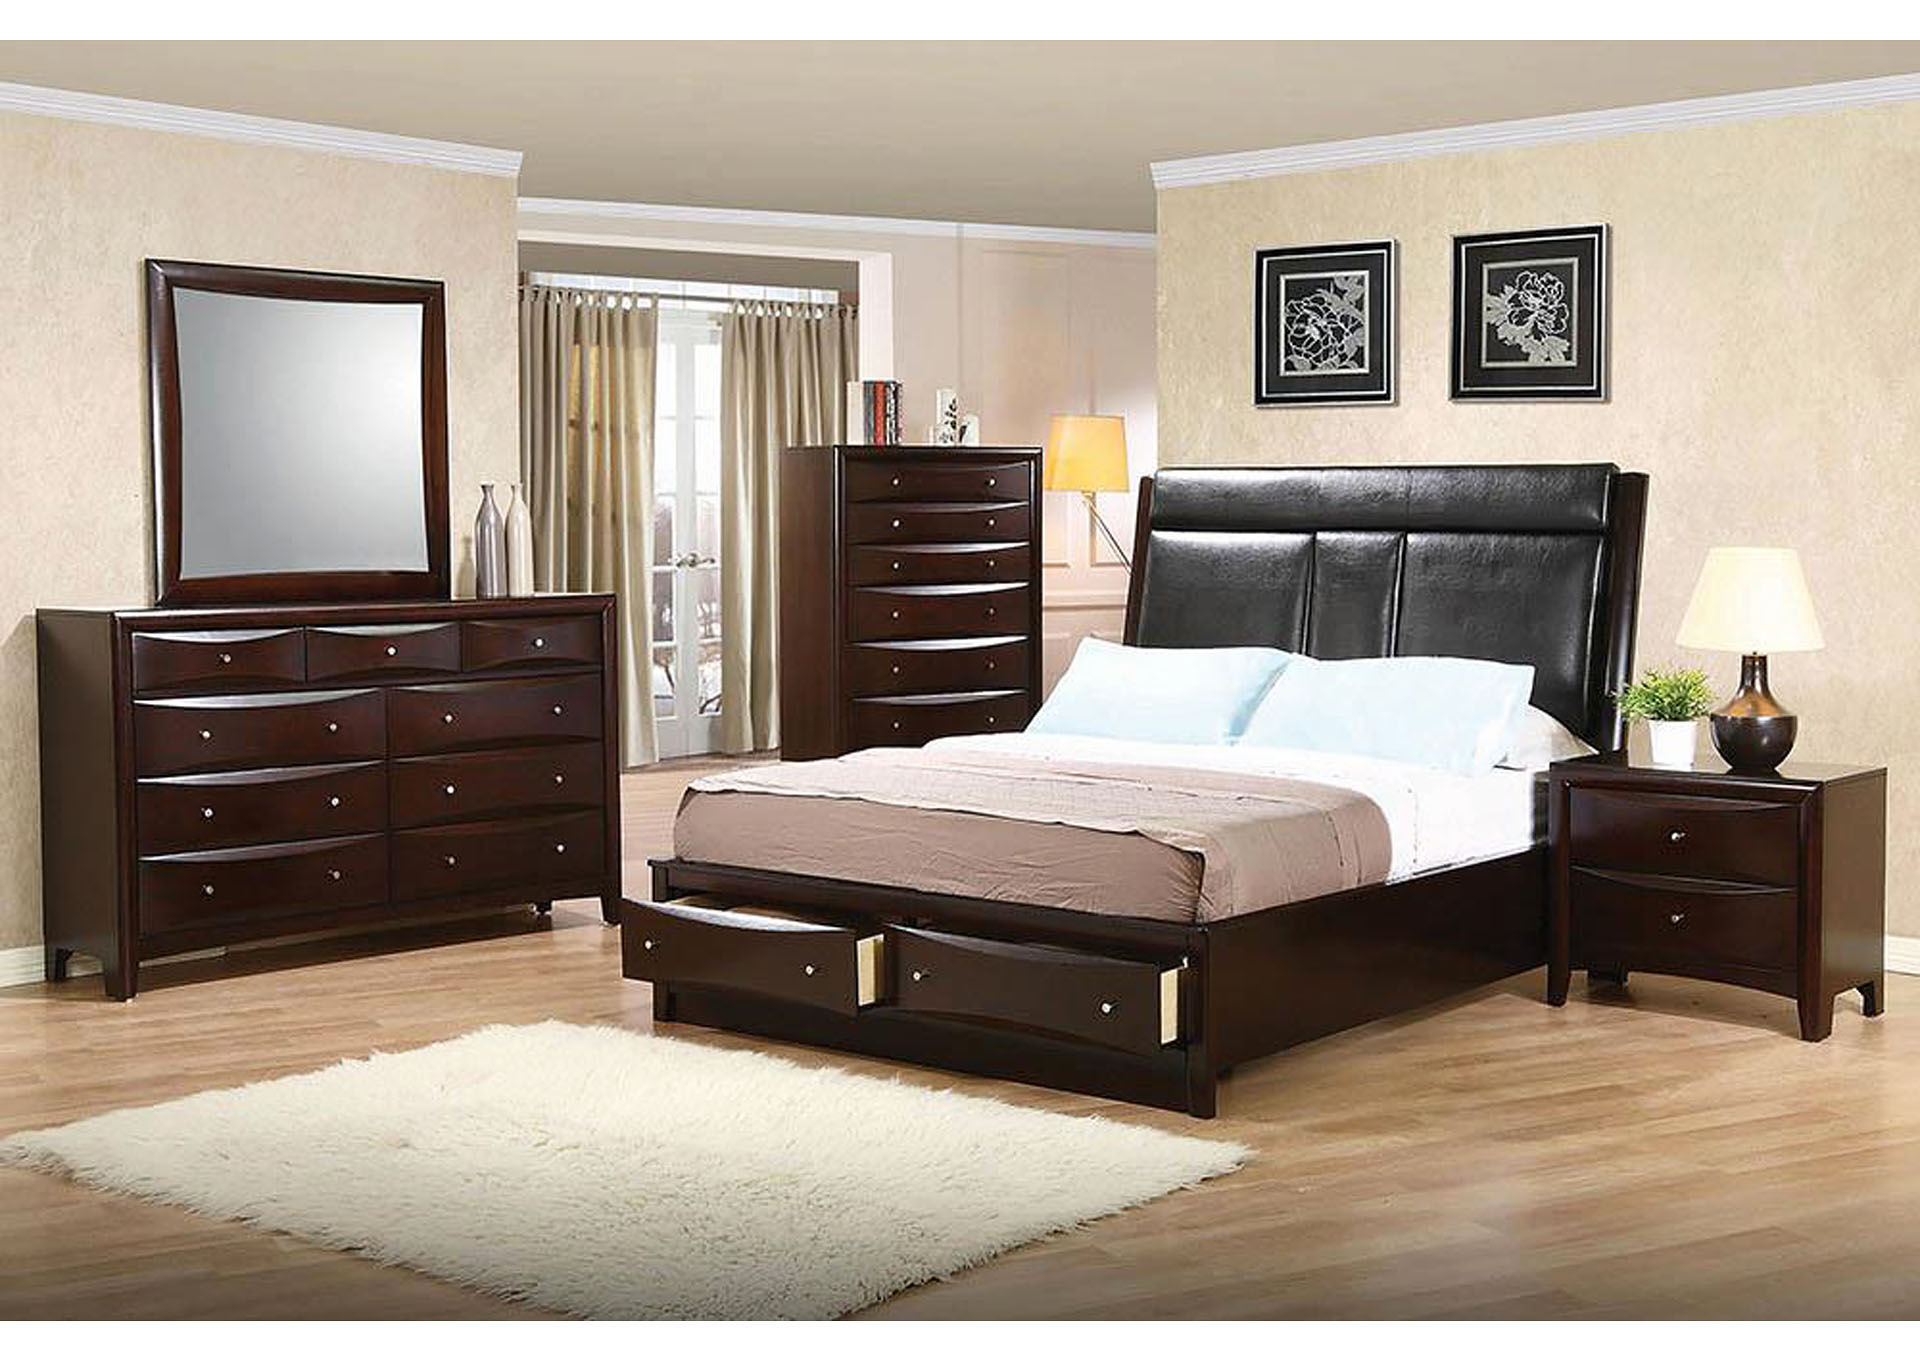 Phoenix Black & Cappuccino Eastern King Bed,Coaster Furniture